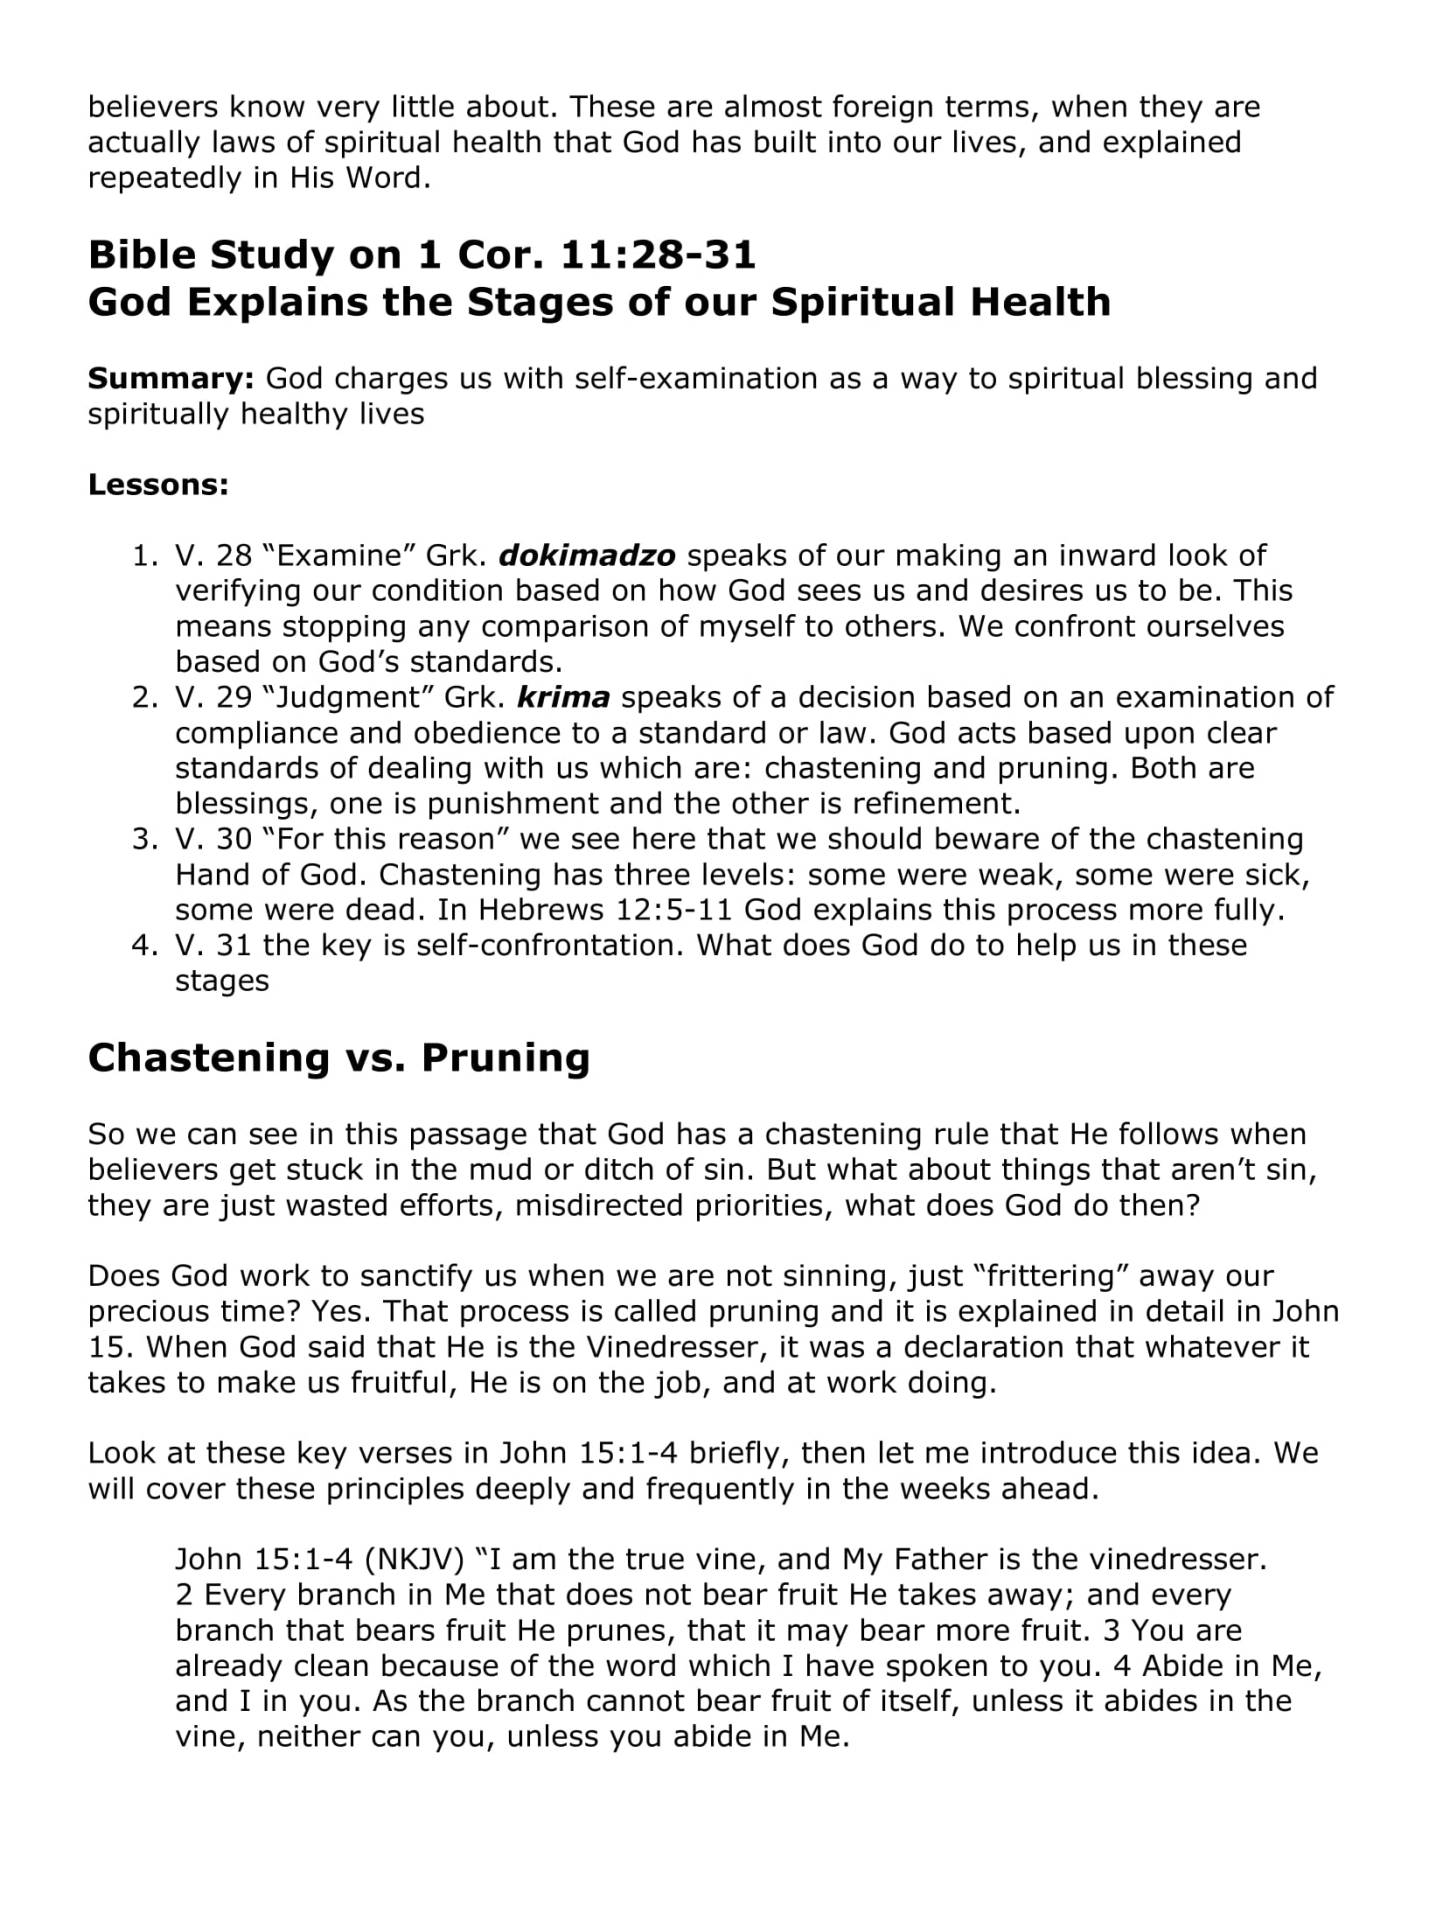 BC&D-07 - A Theology Of Spiritual Health - Chastening, Pruning, And Self-Confrontation-10